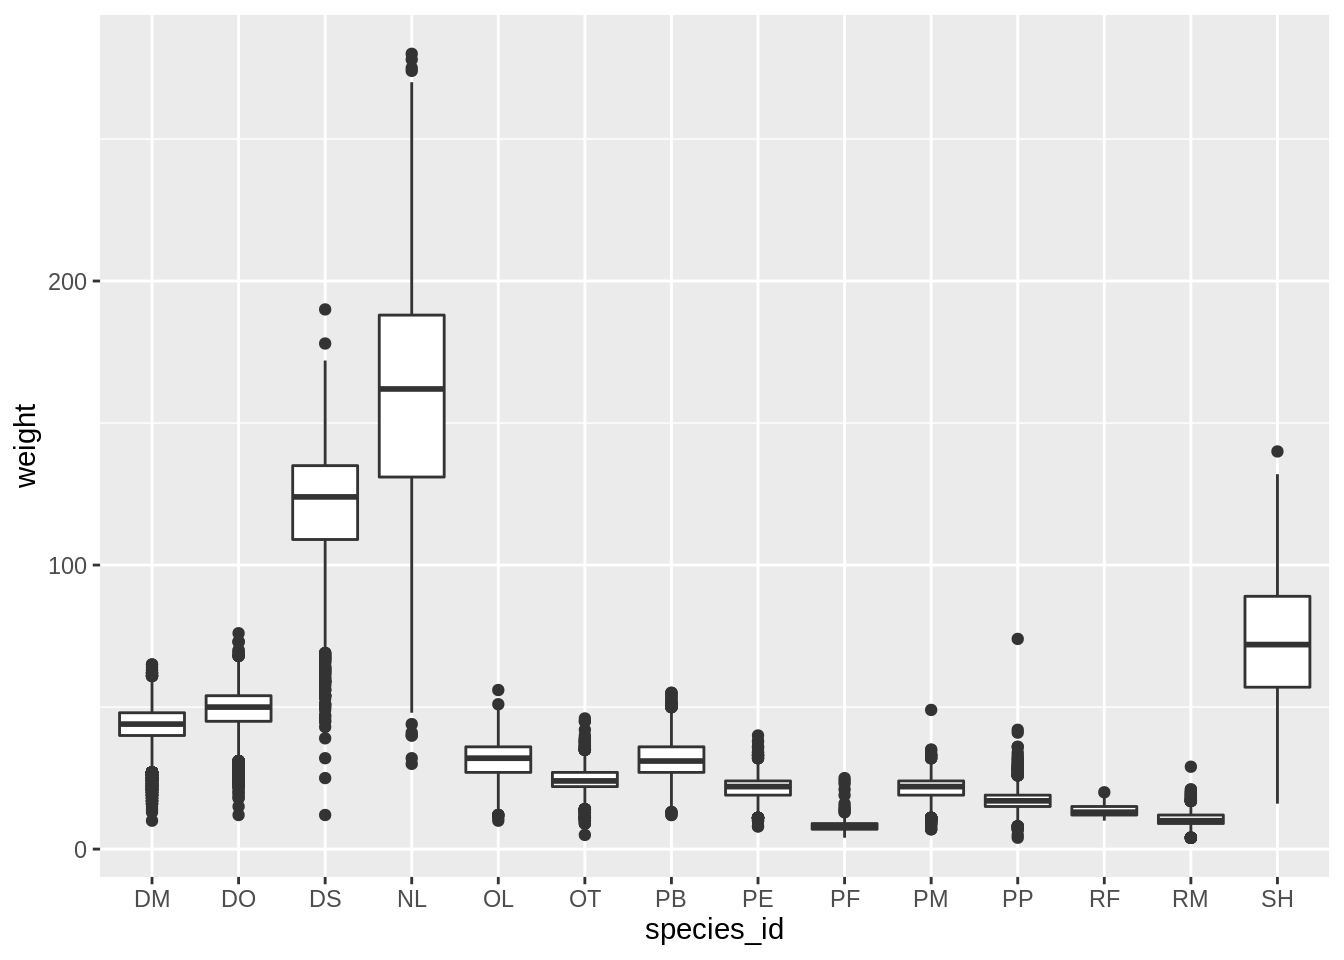 Boxplot of weight vs. species id from the data carpentry ggplot2 lesson